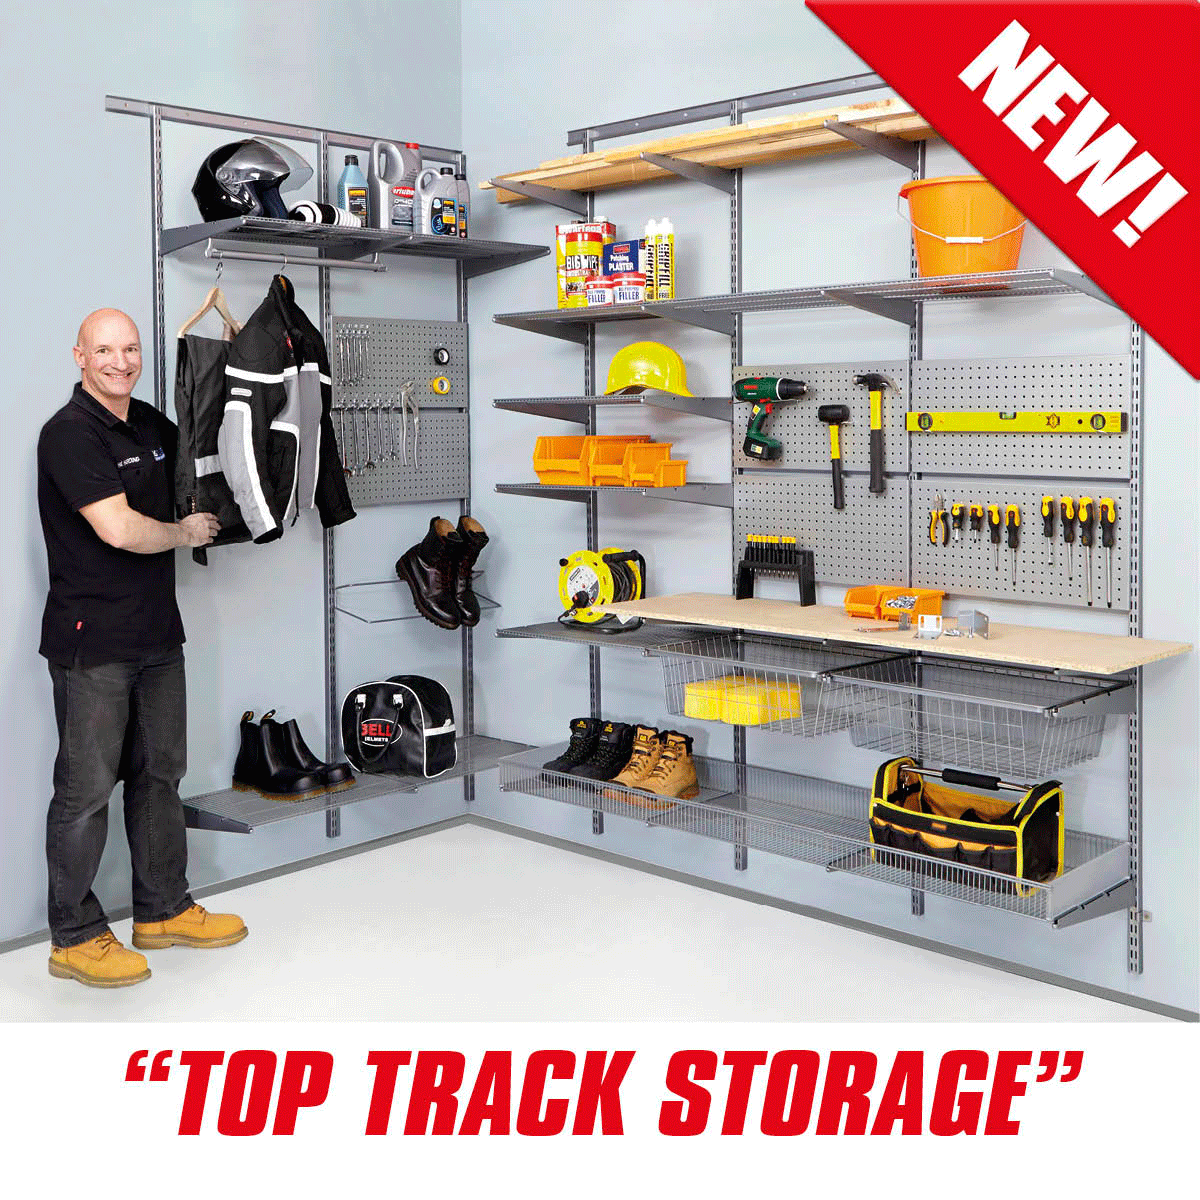 Top Track Wall Mounted Shelving Silver Components Storage Kits Wall Mounted Shelves Plastic Box Storage